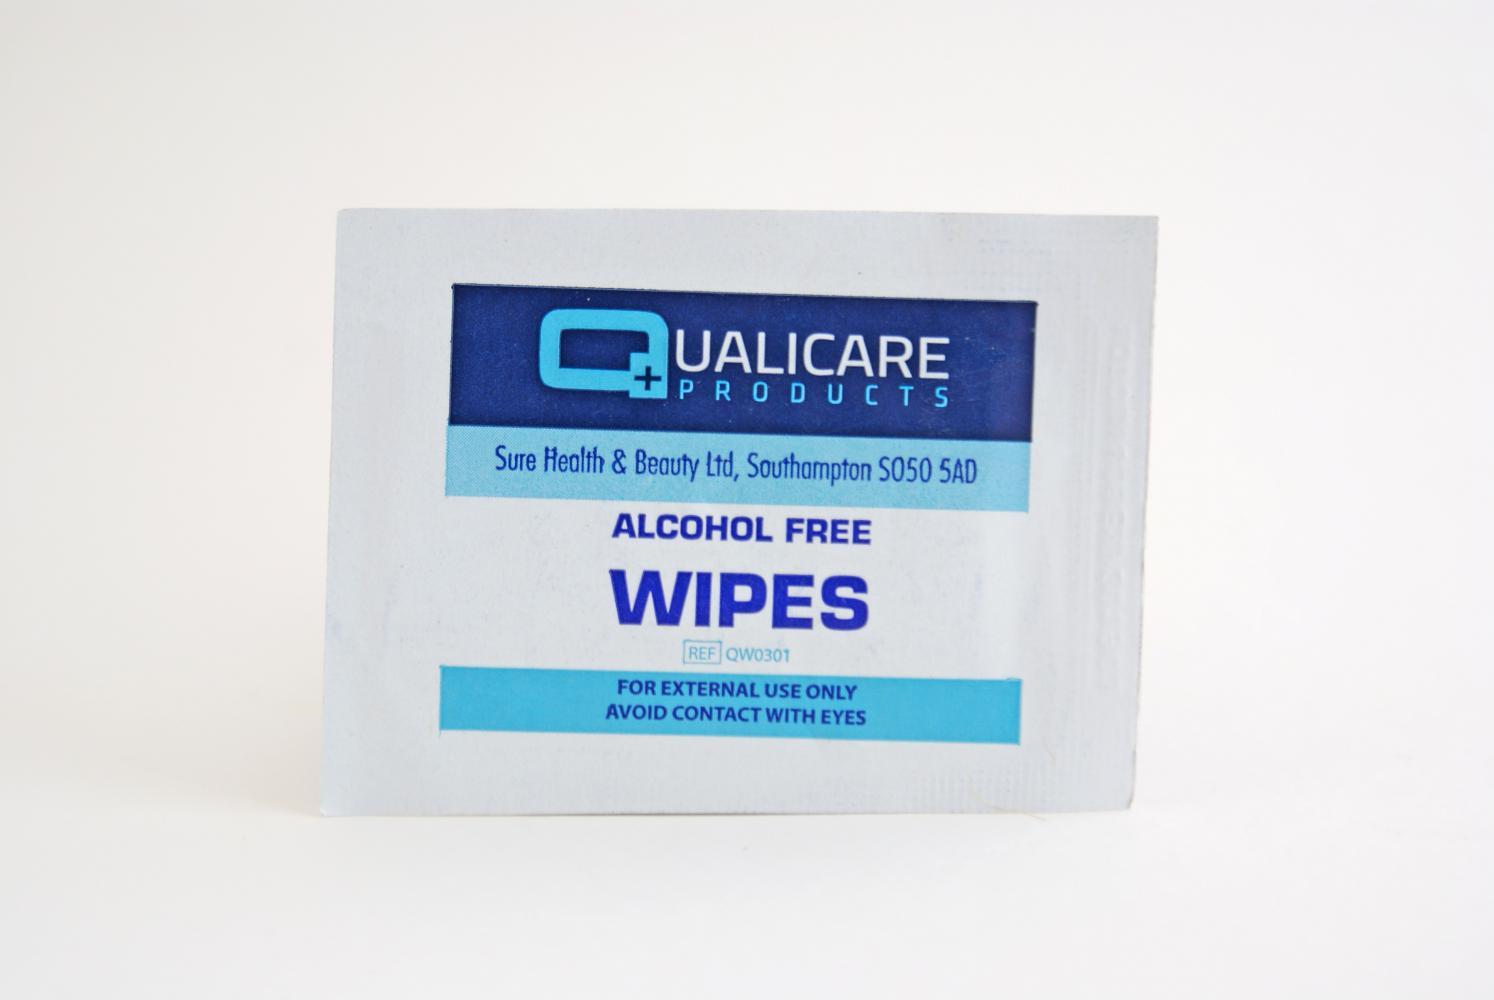 Qualicare Alcohol Free Wipes Pack of 100